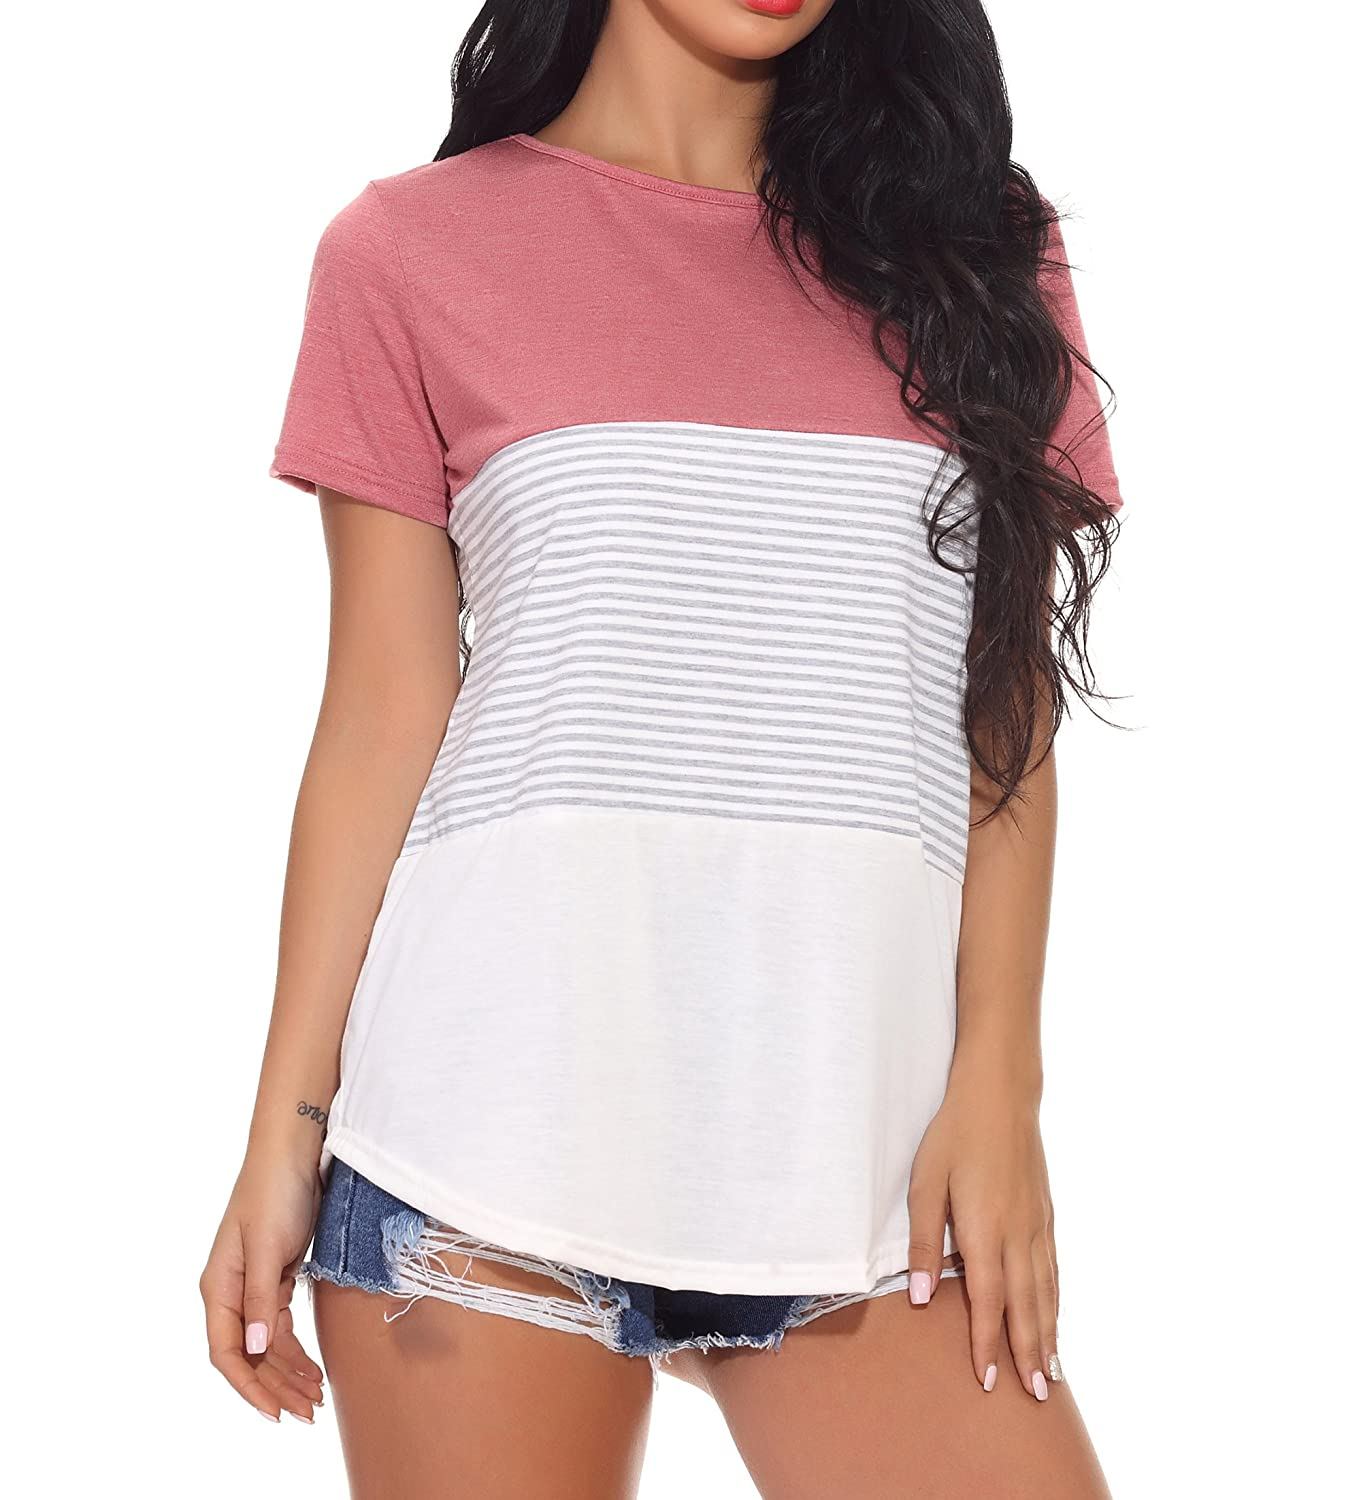 Chvity Women's Short Sleeve T-Shirts Blouse Color Block Tops Striped Tee Casual